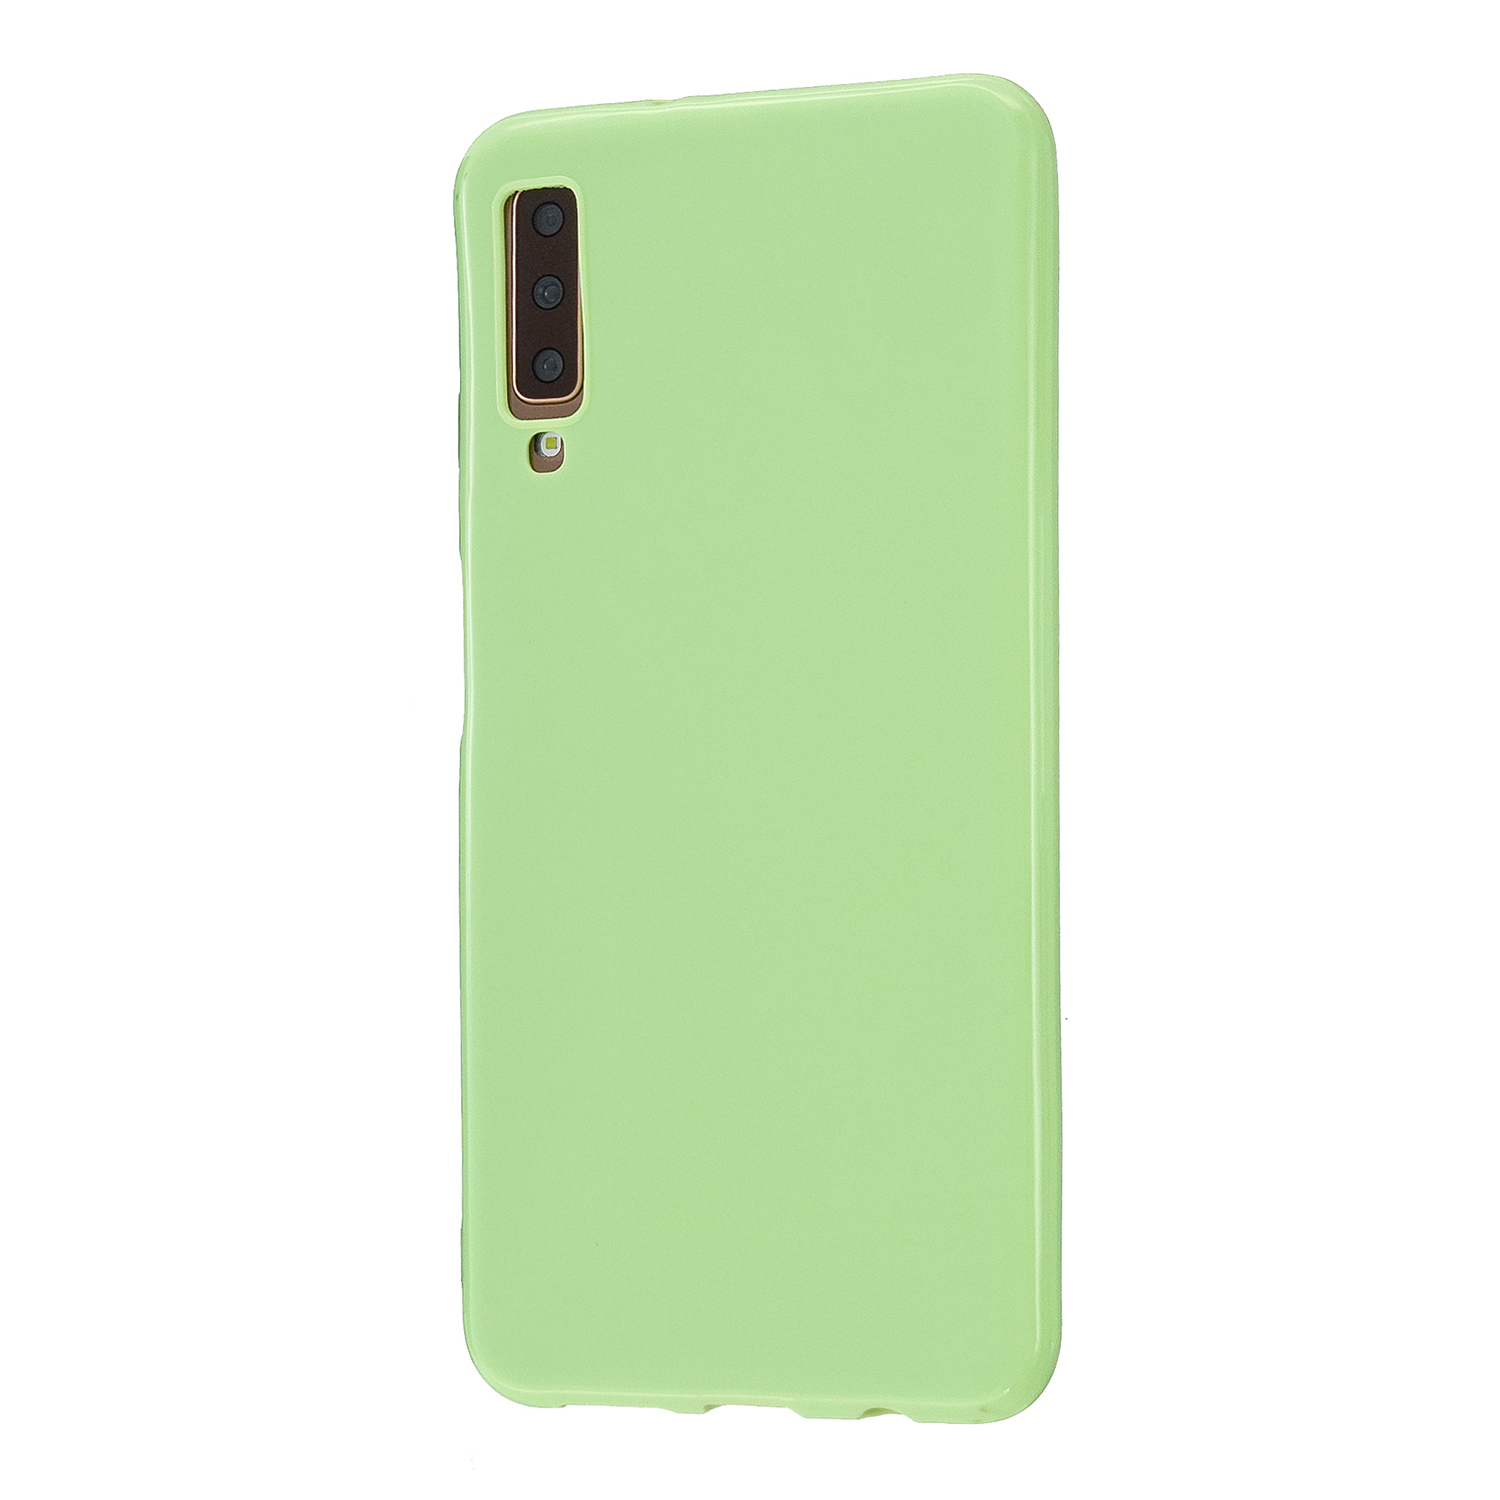 For Samsung A7 2018/A920 Smartphone Case Soft TPU Precise Cutouts Anti-slip Overal Protection Cellphone Cover  Fluorescent green